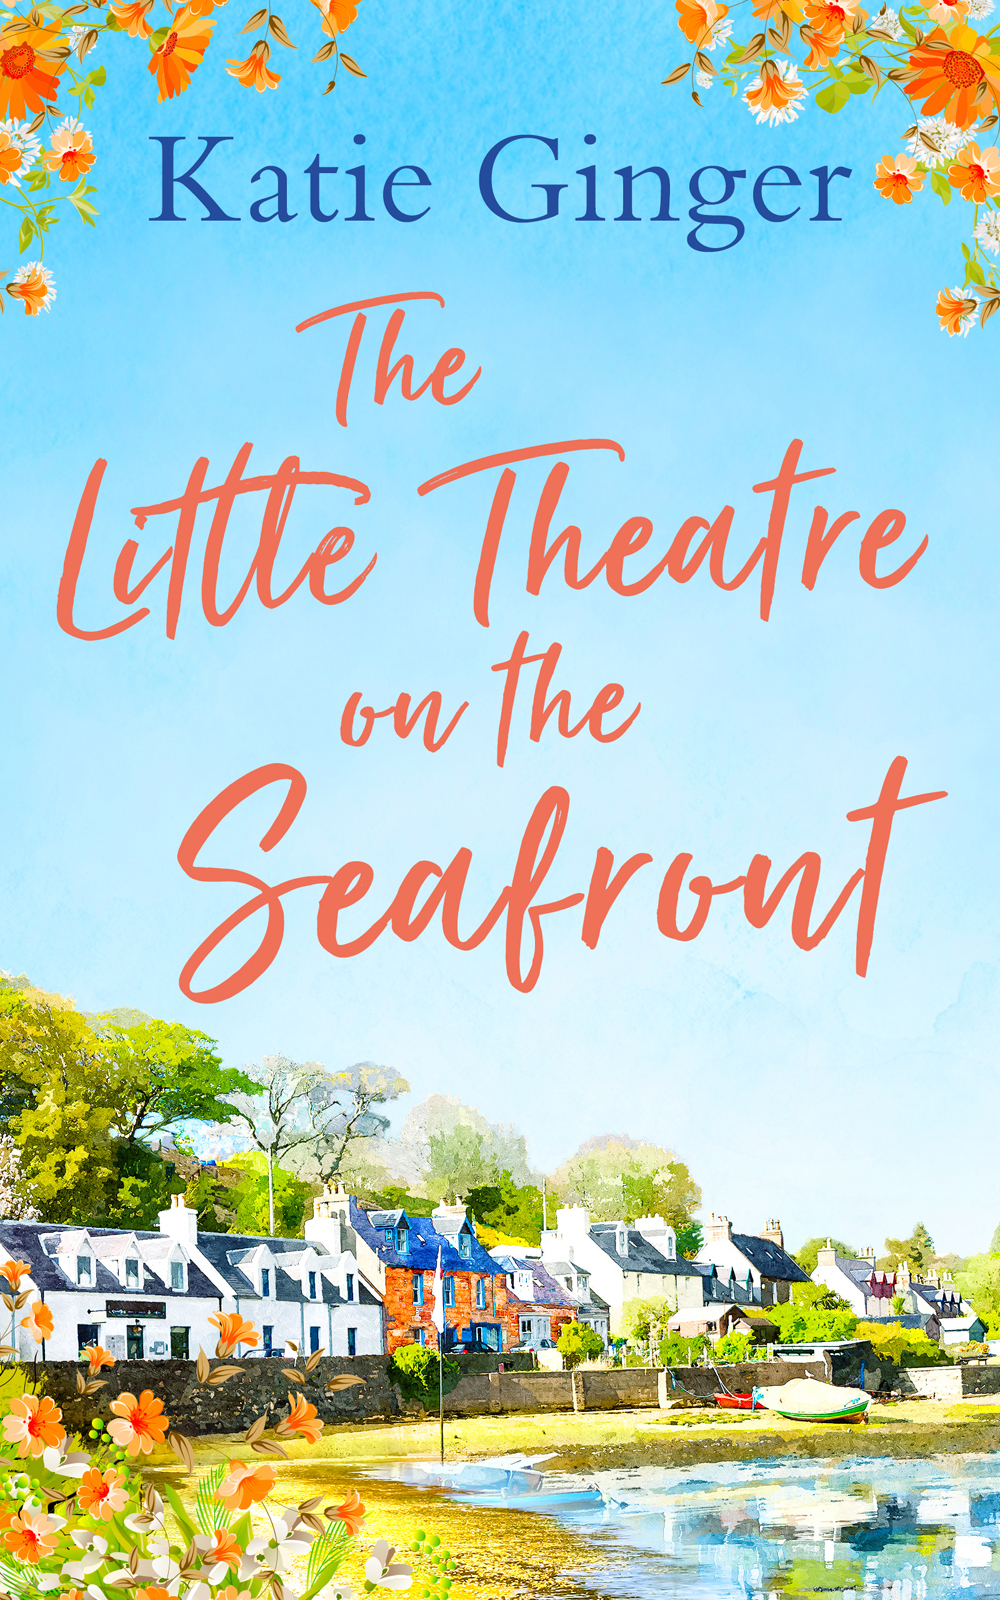 Katie Ginger The Little Theatre on the Seafront: The perfect uplifting and heartwarming read expressionism and expressionist theatre